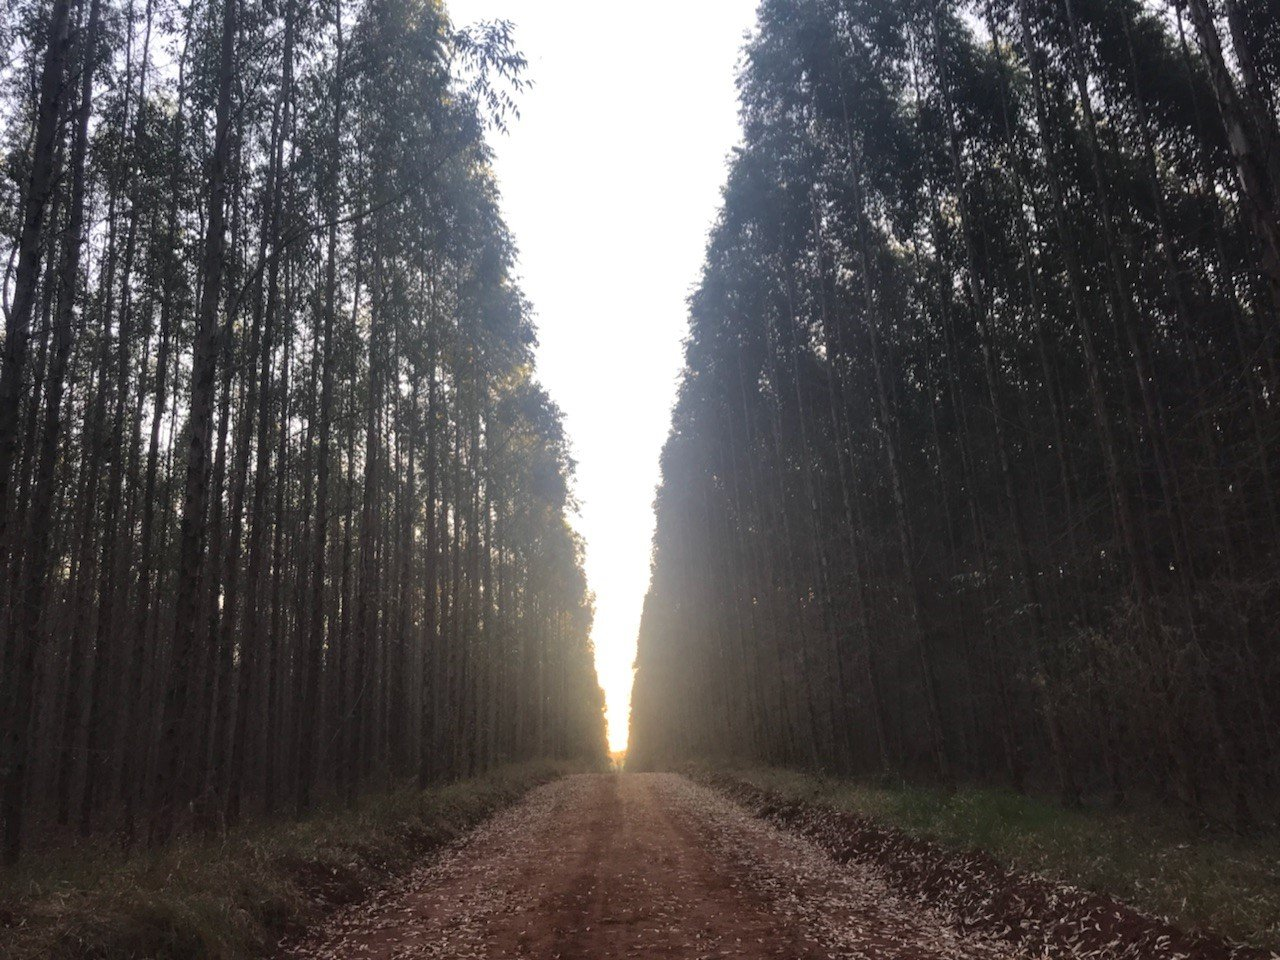 The Advantages of Genetic Improvements for Pine and Eucalyptus Plantations